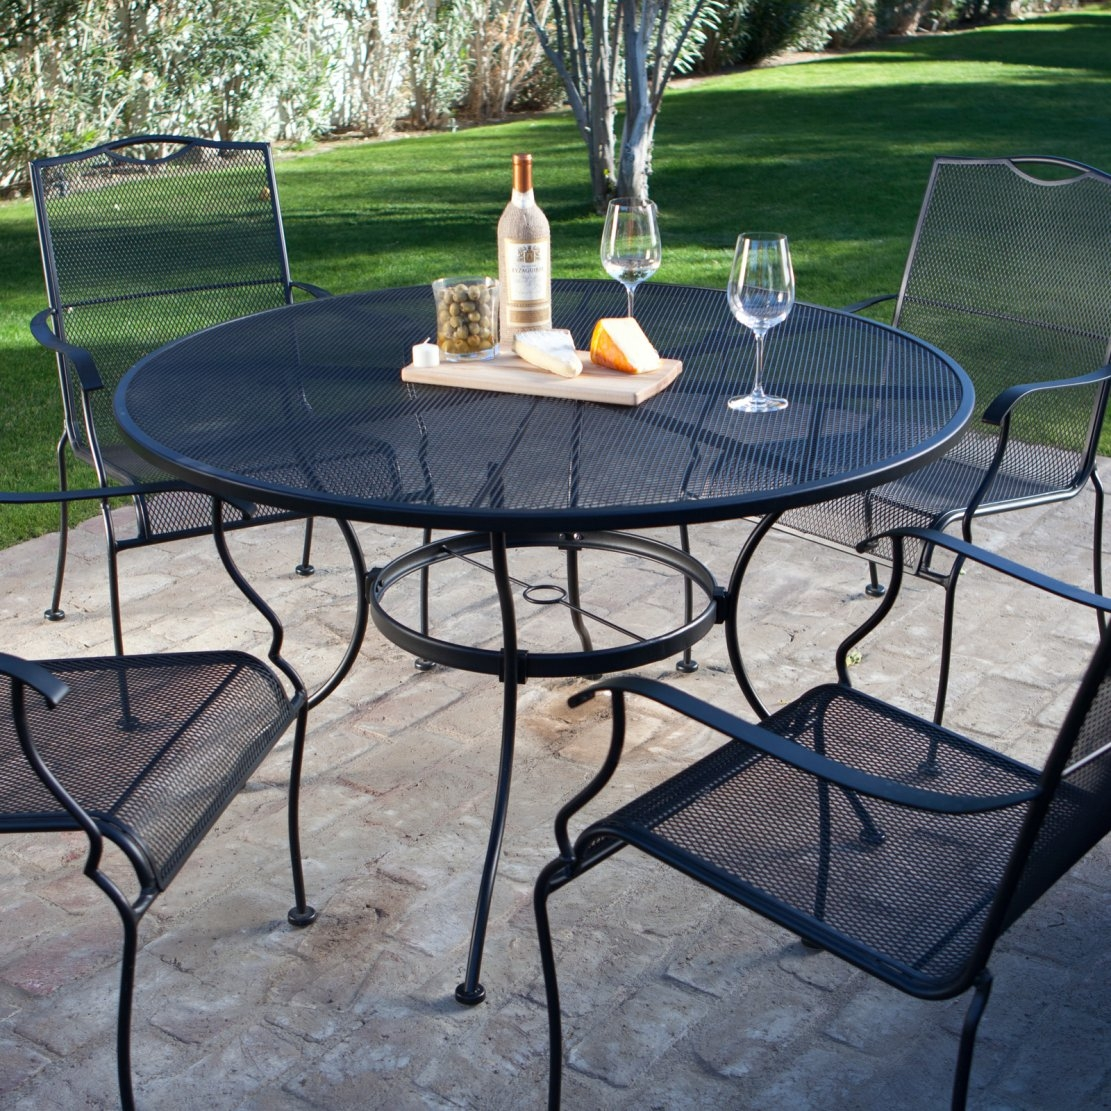 Wrought Iron 3 Piece Outdoor Setting 5 Piece Wrought Iron Patio Furniture Dining Set Seats 4